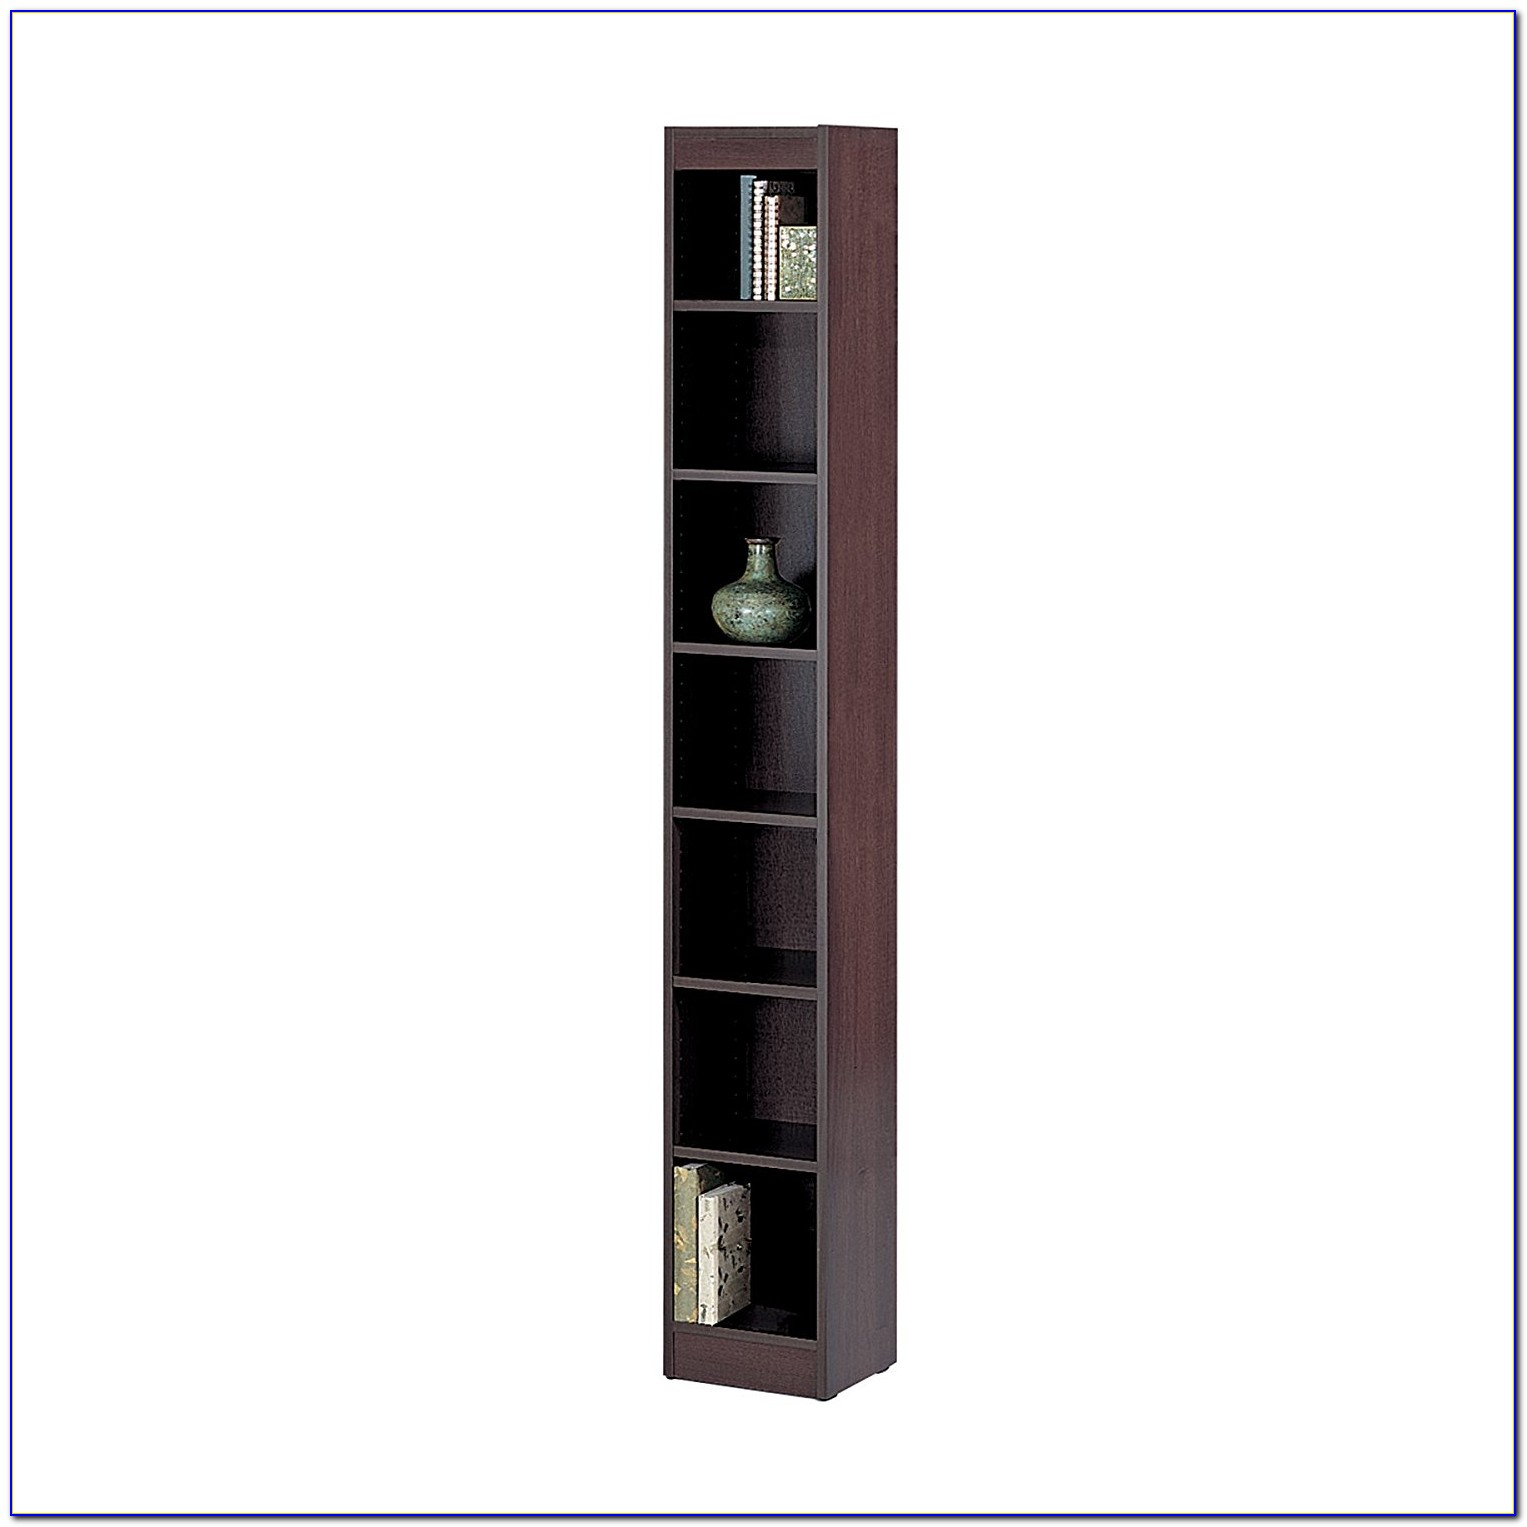 12 Inch Wide Bookshelves